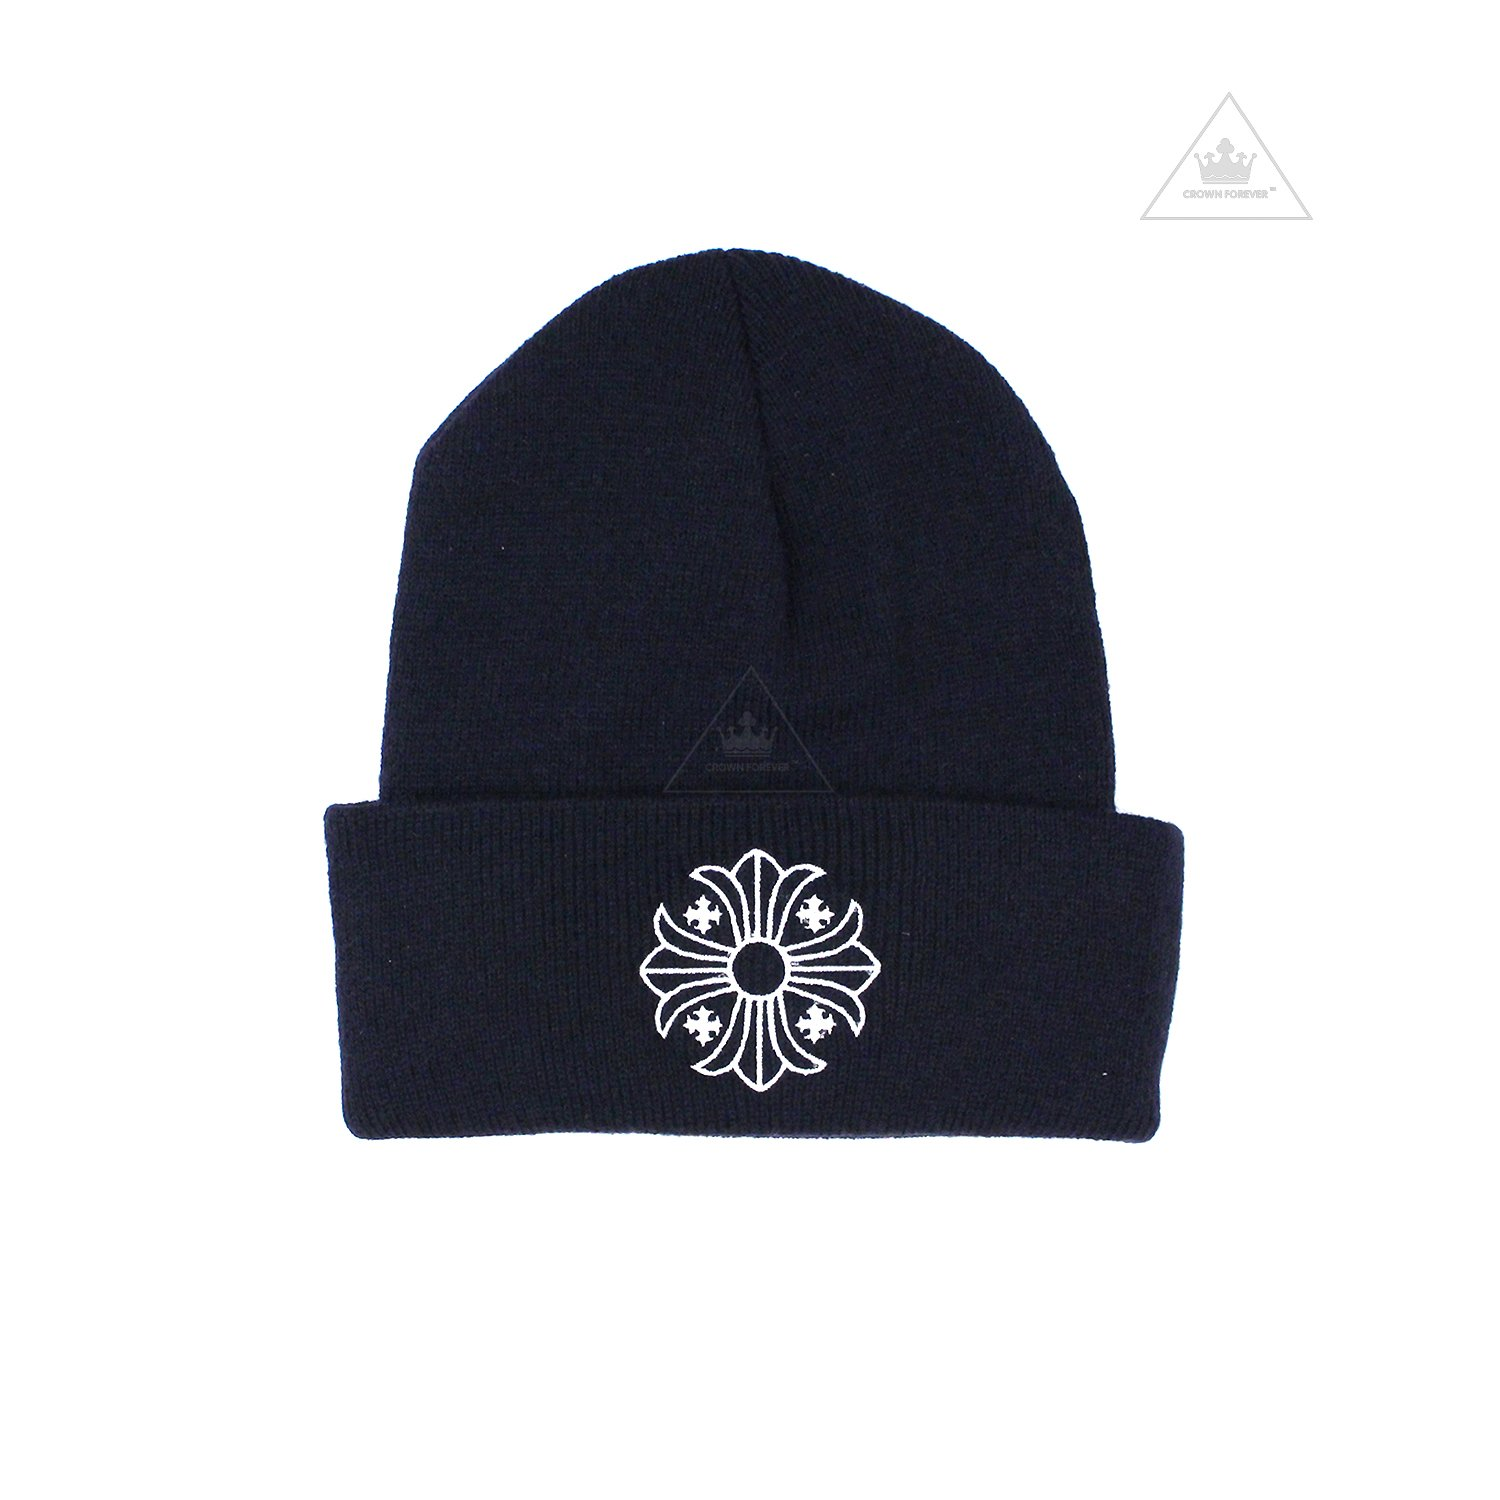 CH Plus Cross Wool Beanie Navy by CHROME HEARTS, available on crownforeverla.com for $260 Kylie Jenner Outerwear SIMILAR PRODUCT